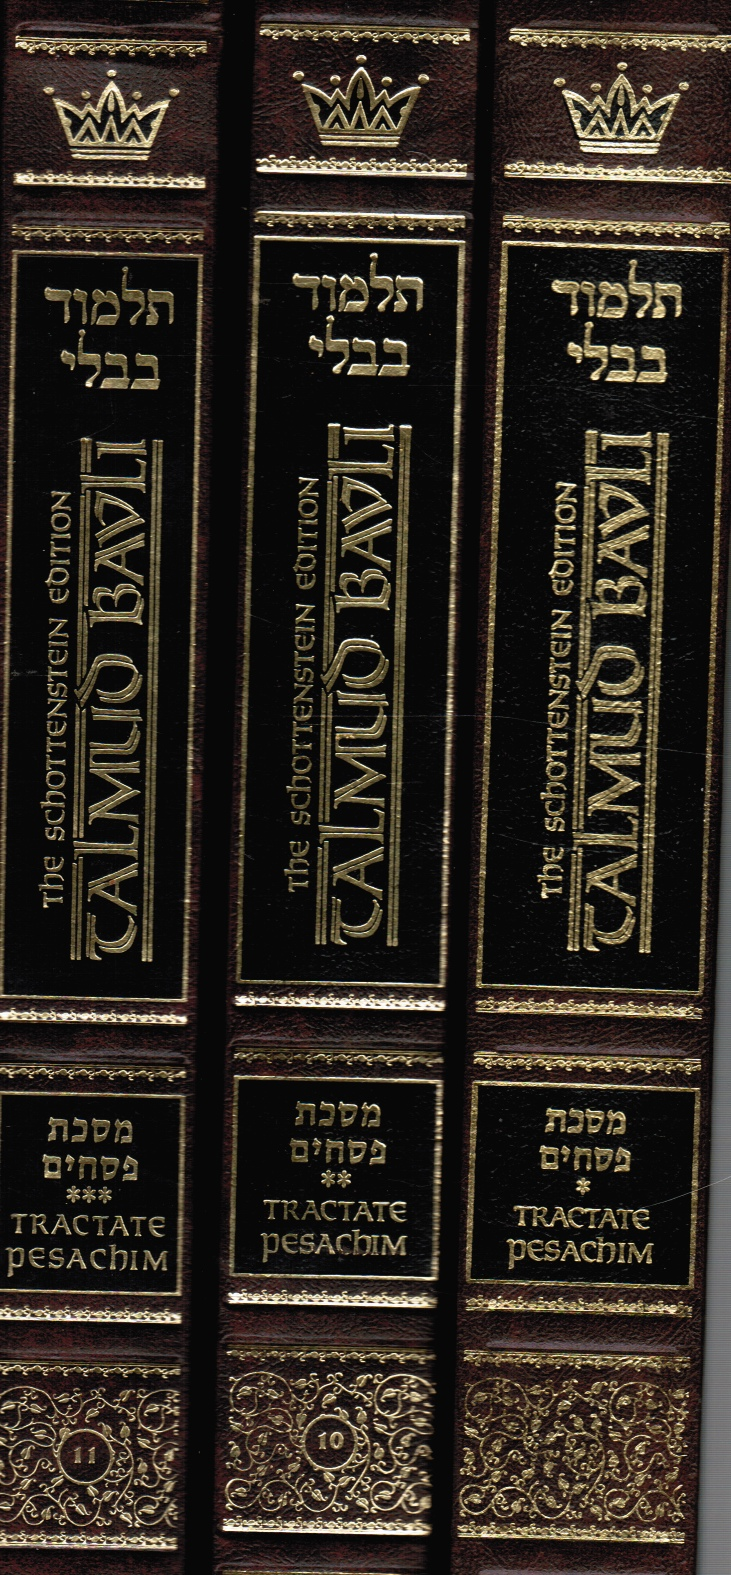 Talmud Bavli: the Gemara -- Tractate Pesachim (3 Books) Full-Sized Pesachim -- Vol 1, 2 and 3